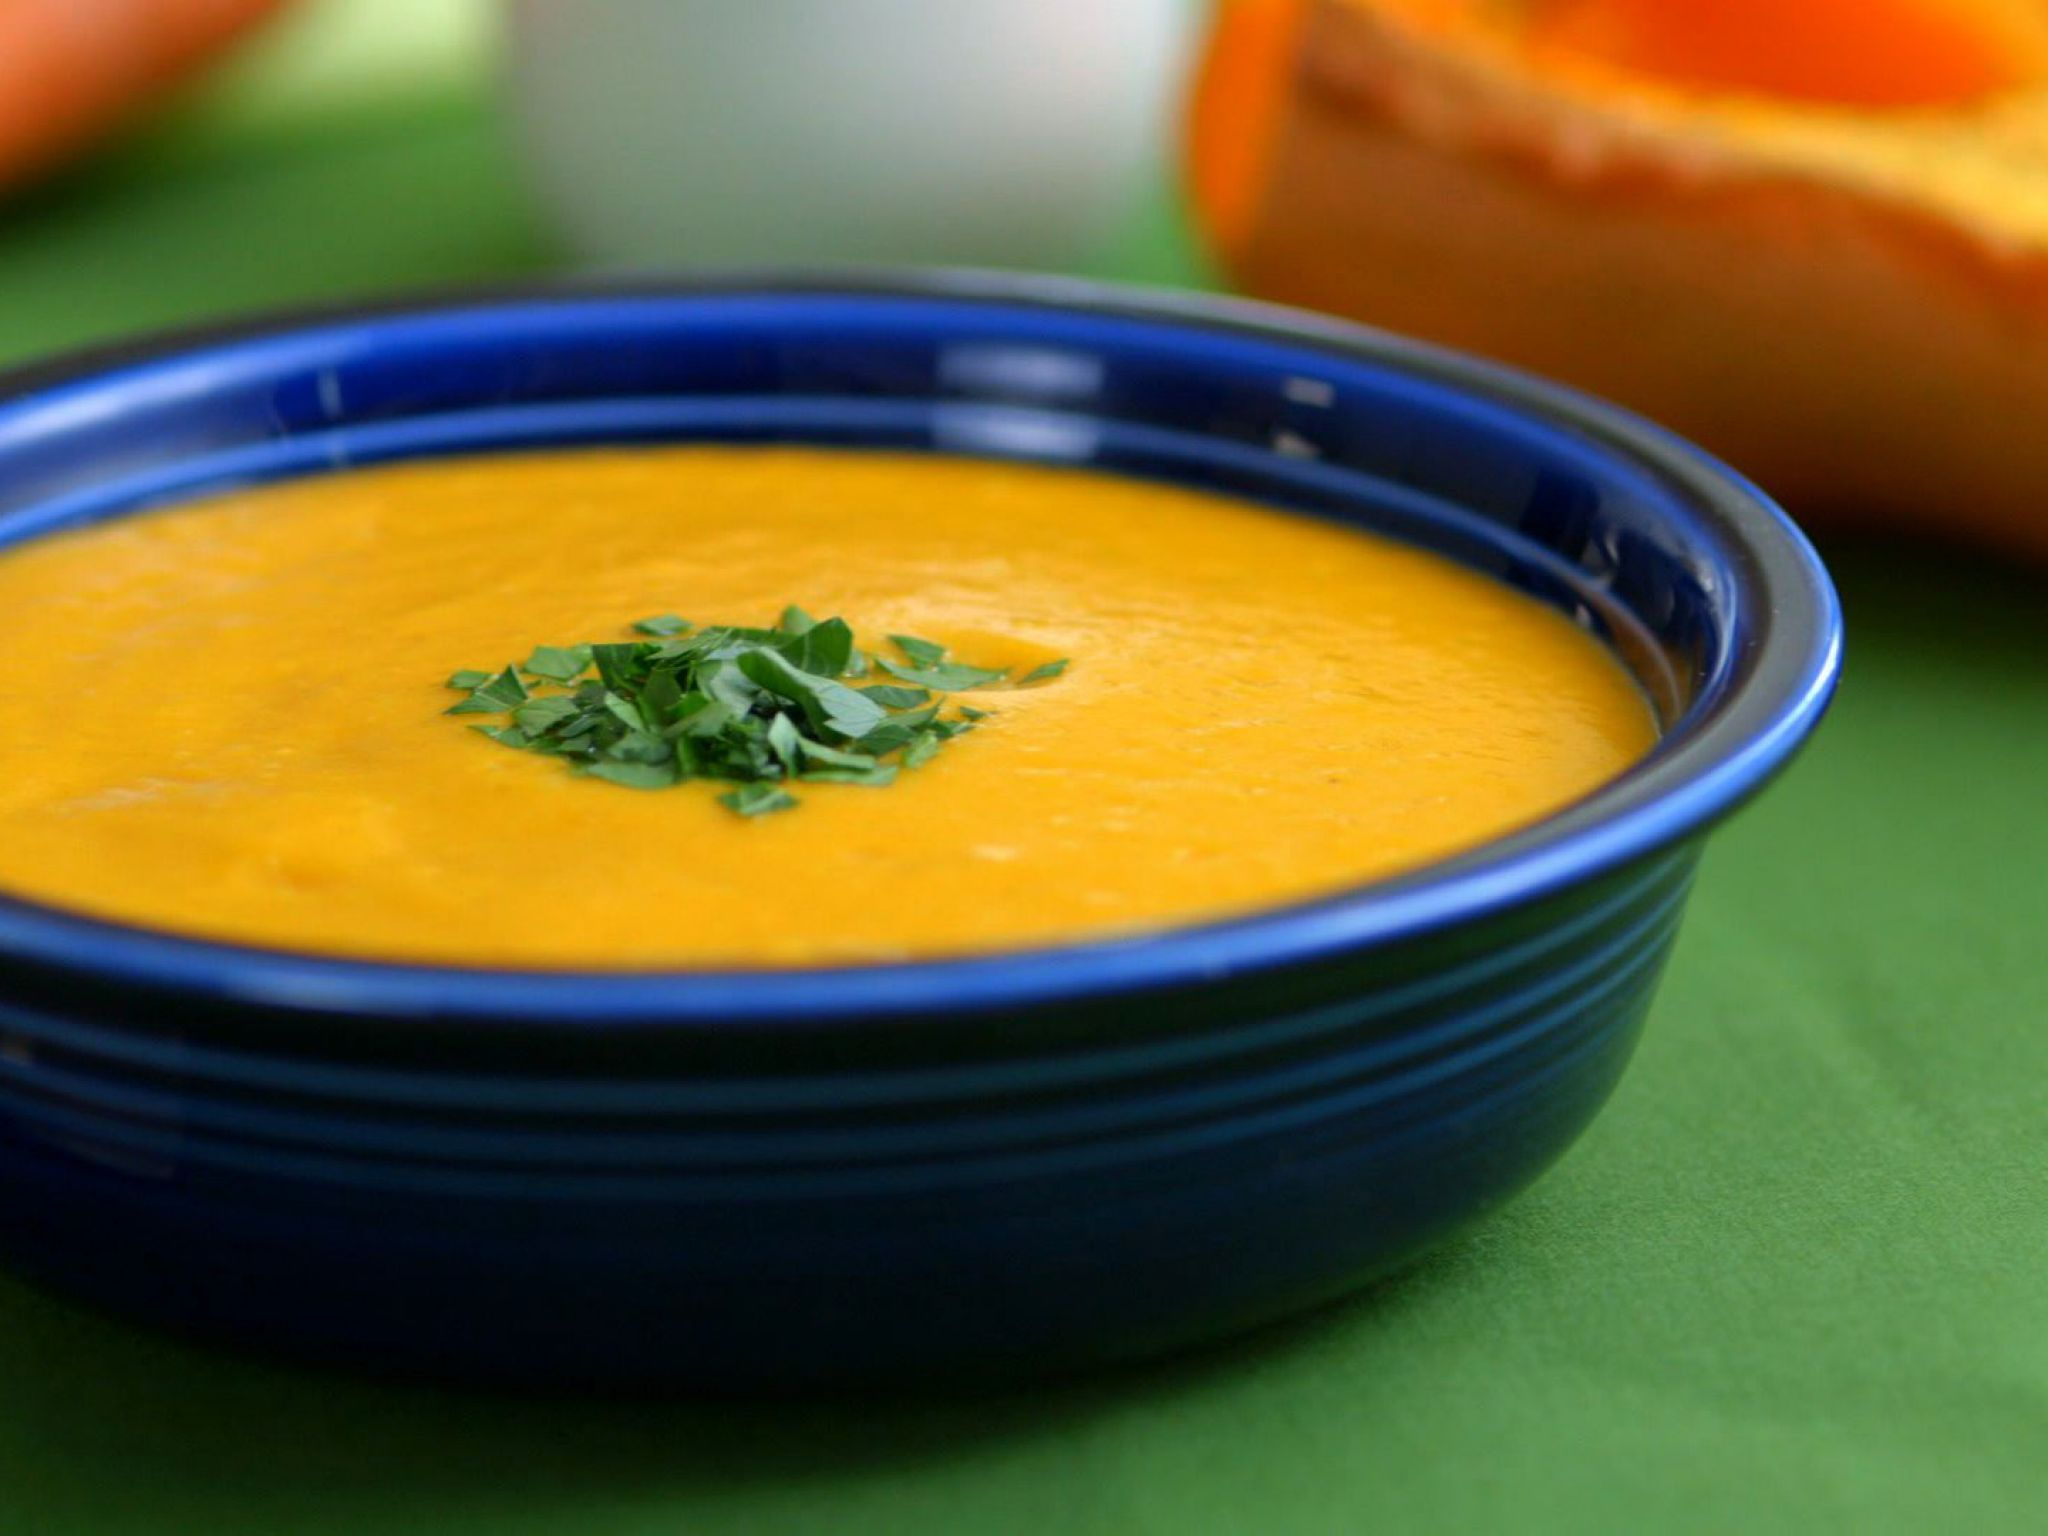 Coconut Curried Butternut Squash Soup Recipe Curried Butternut Squash Soup Food Network Recipes Food Processor Recipes